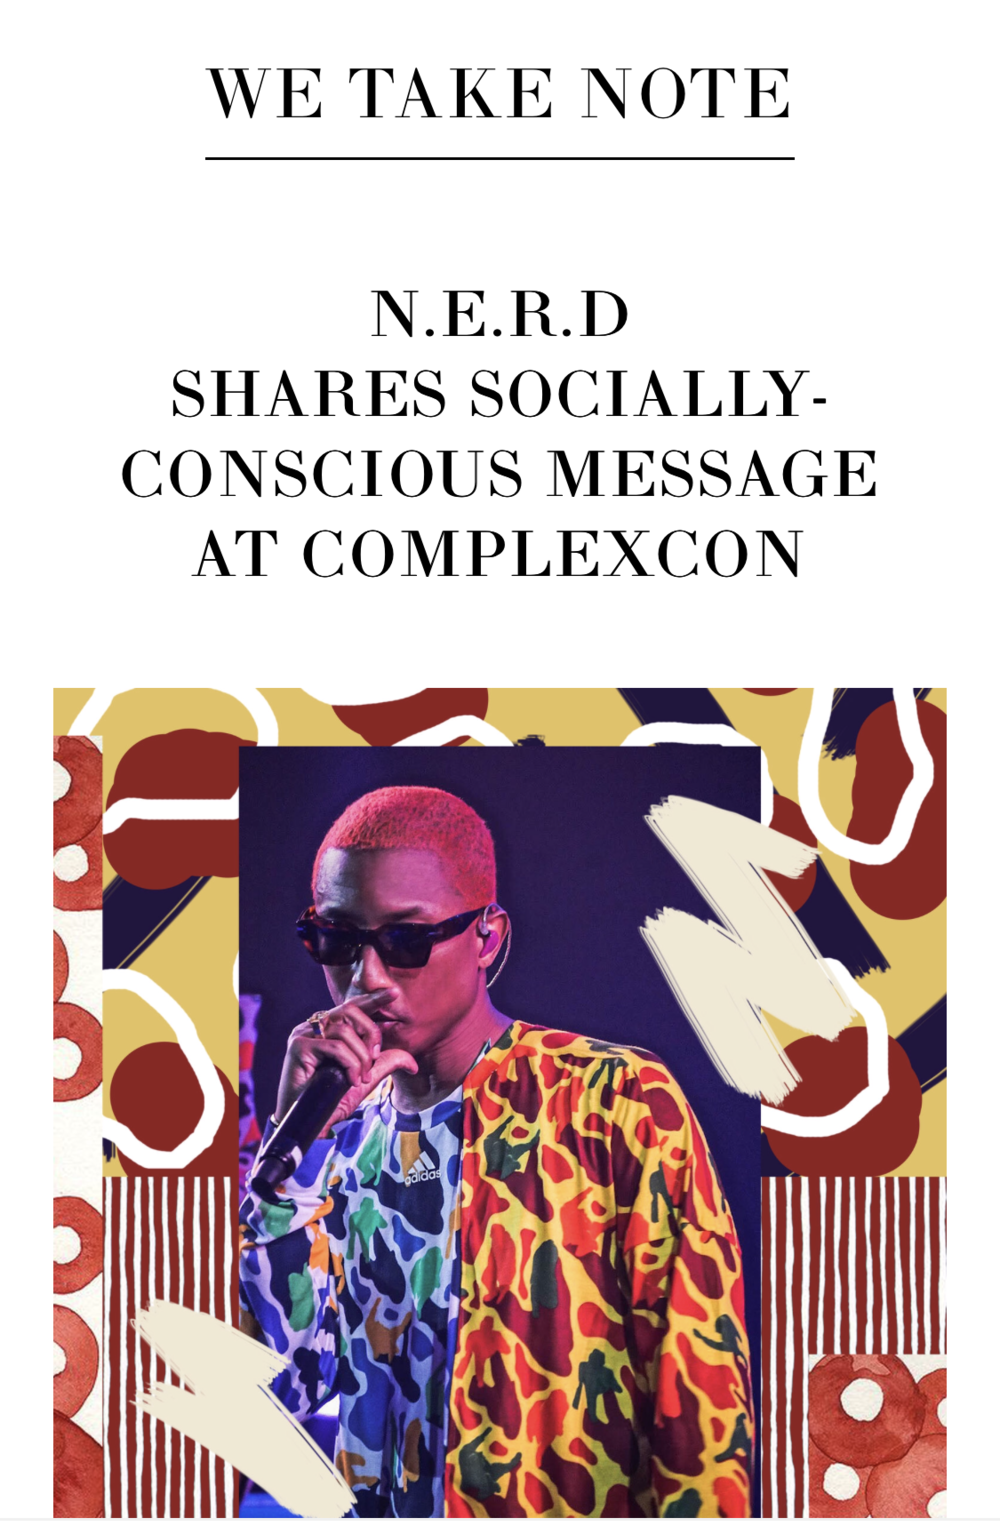 N.E.R.D Photo Placements for We Take Note